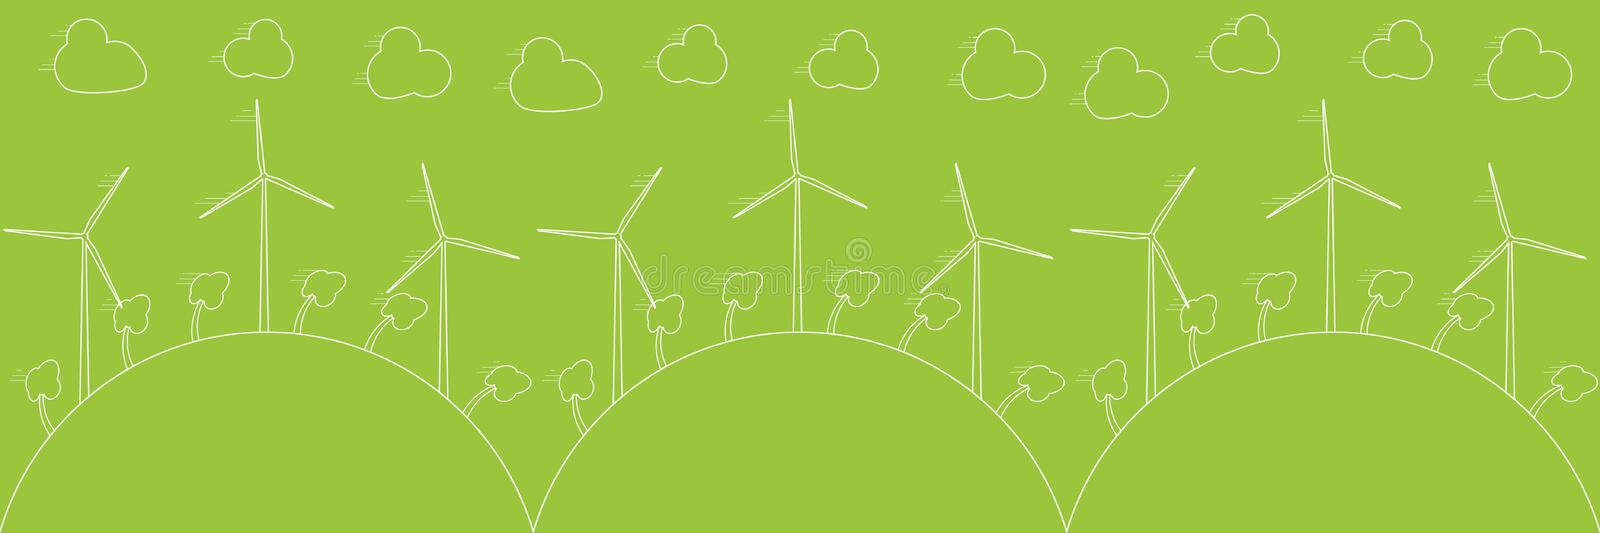 Green eco concept - wind energy. Wind generators, vector illustration. Alternative power energy technology. vector illustration